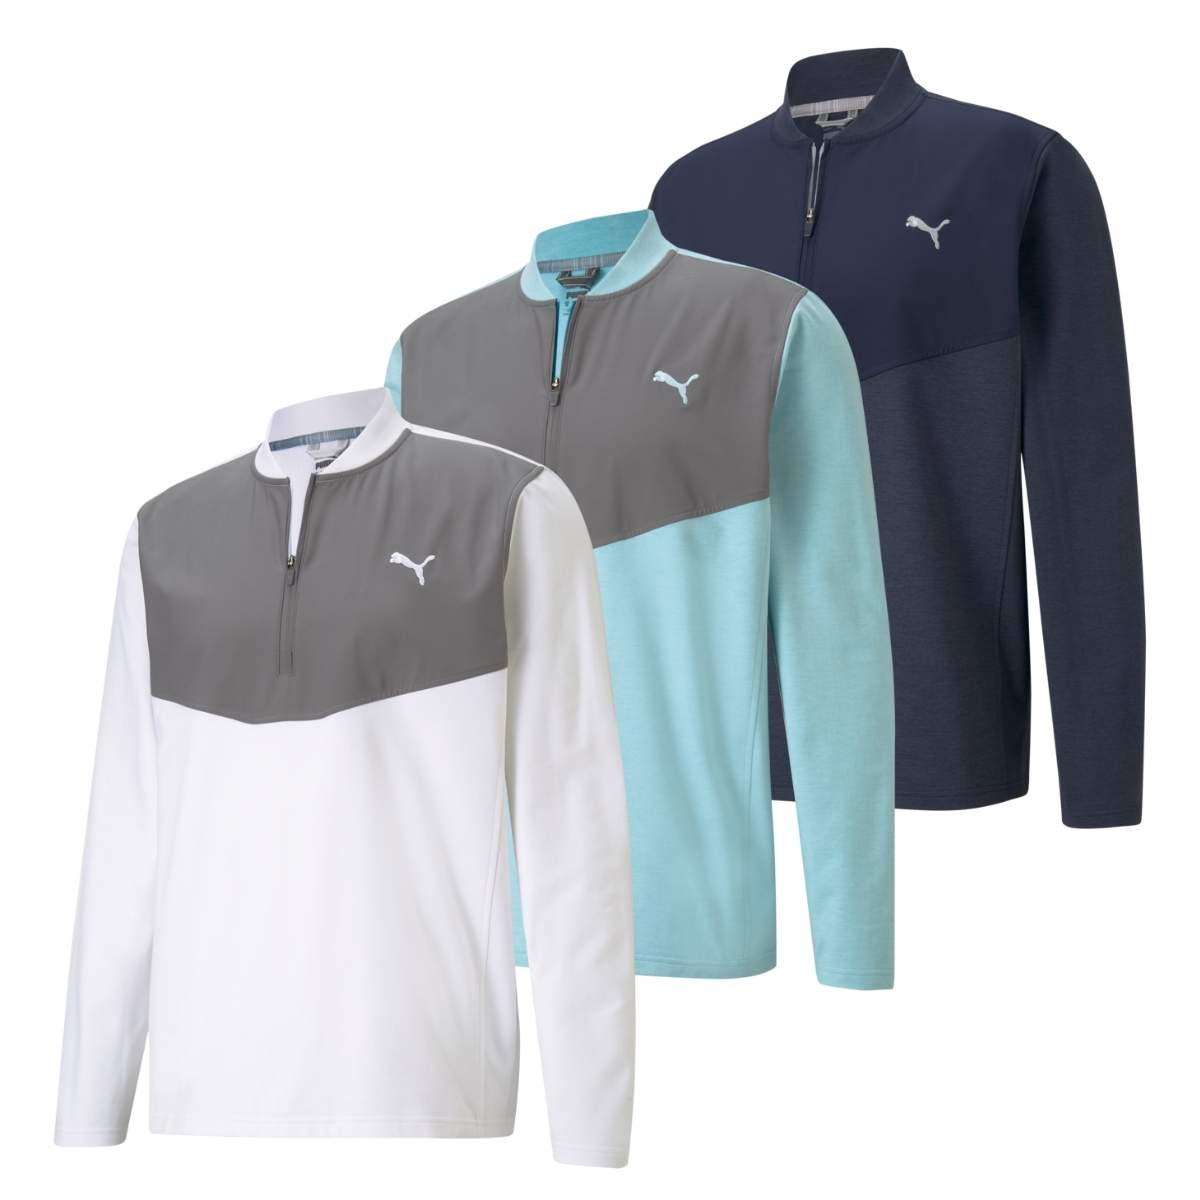 Puma Men's 2021 Cloudspun Stlth 1/4 Zip Pullover